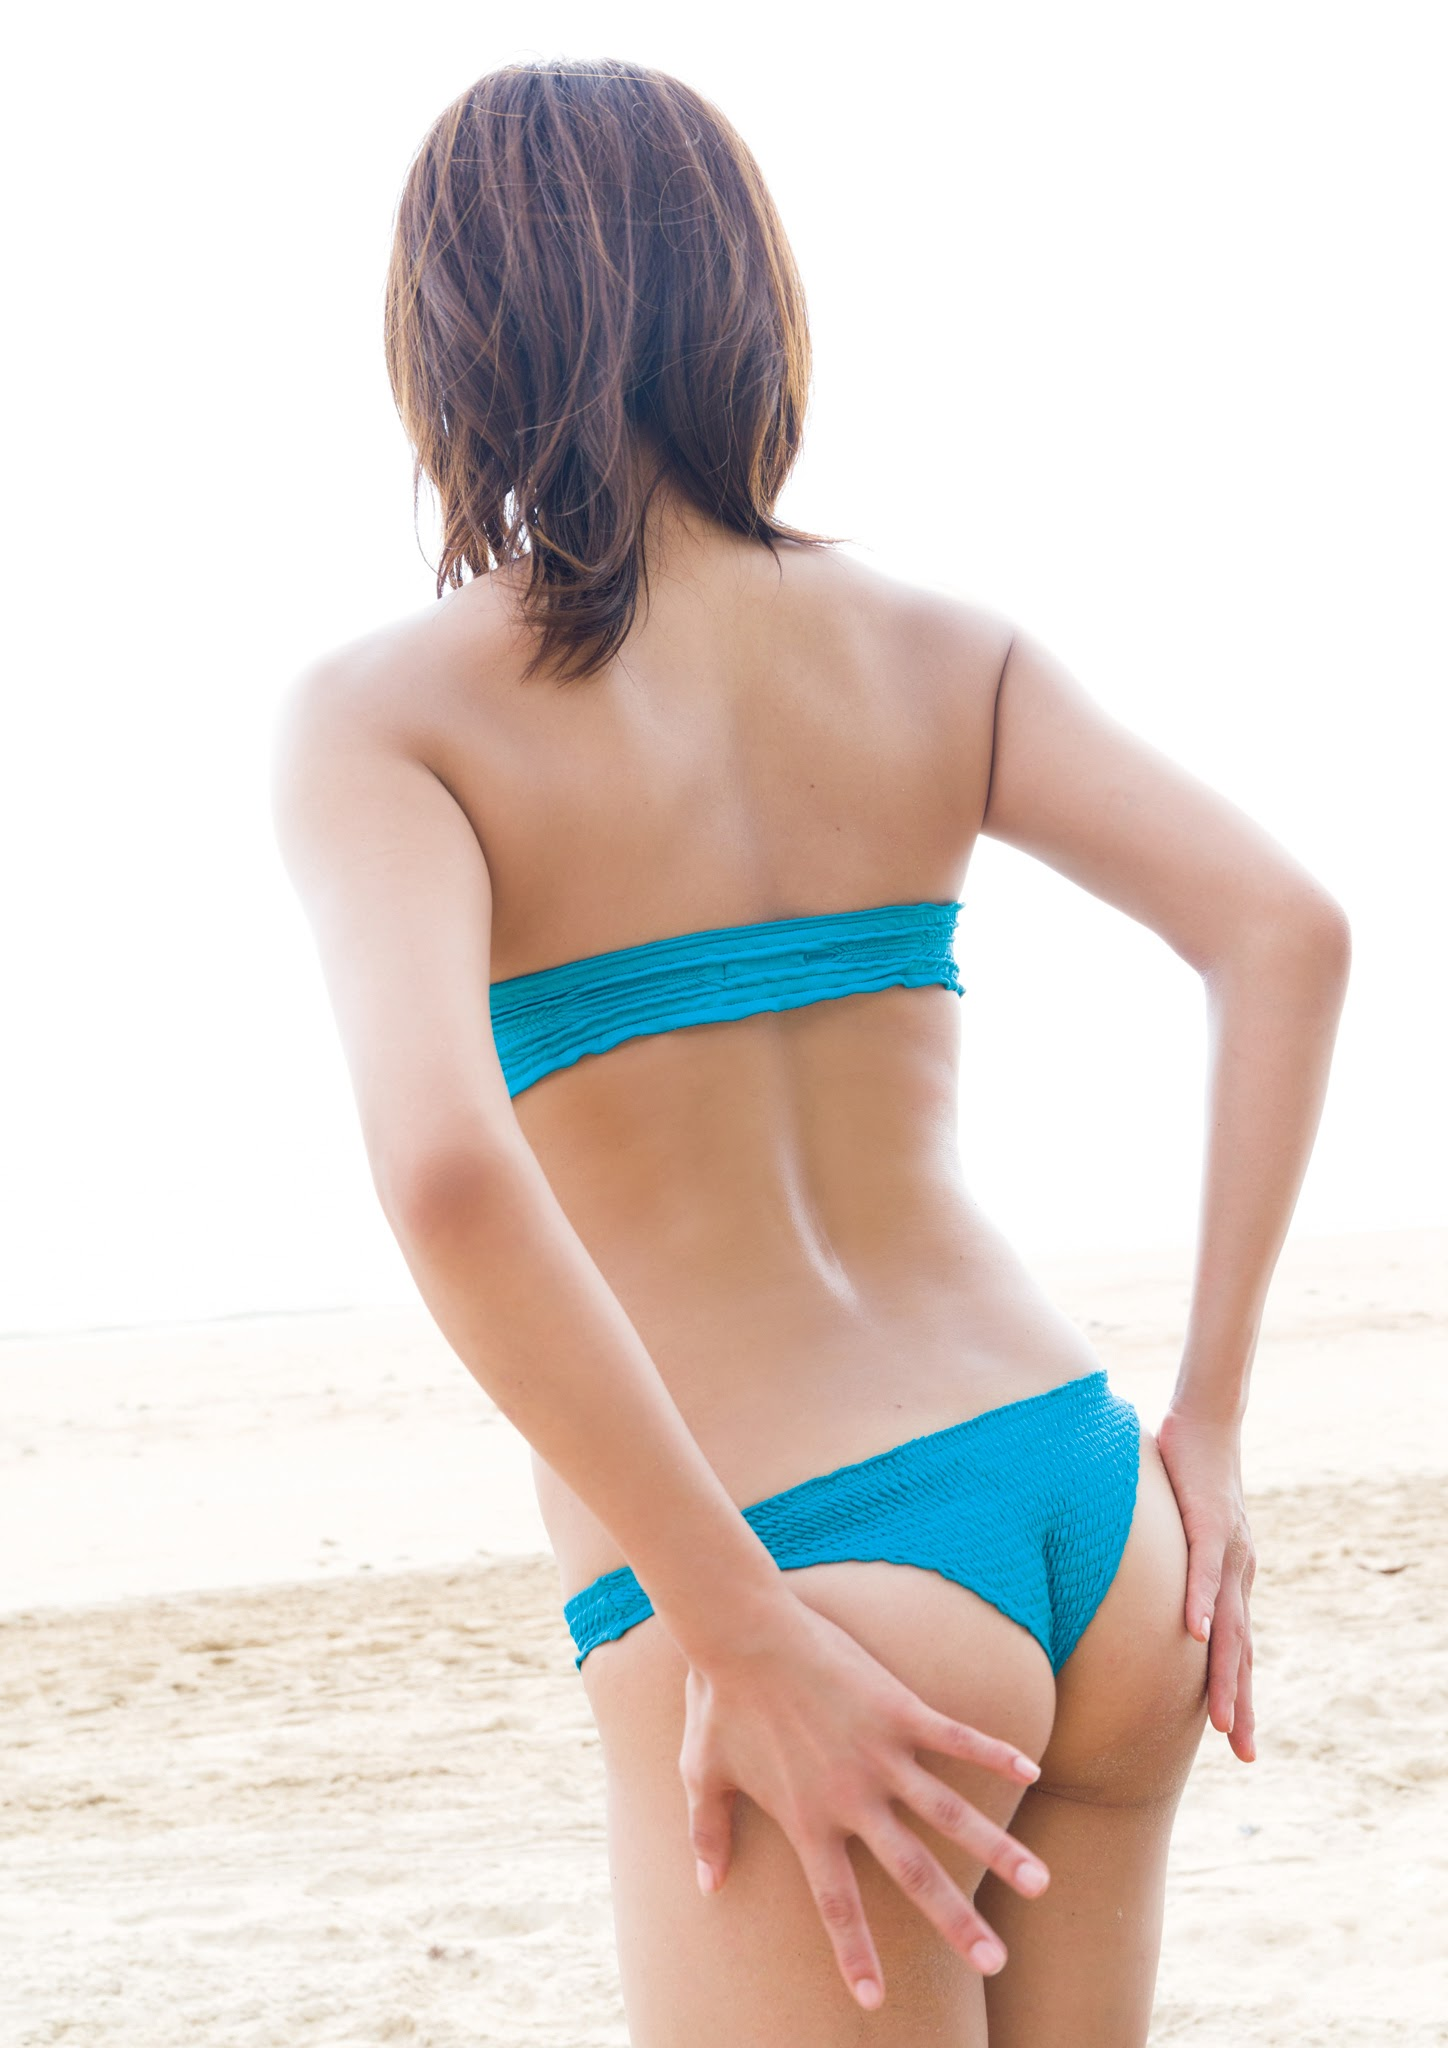 Super body of H cup Minami Wachi 2020 that exposes body and mind in tropical Thailand047